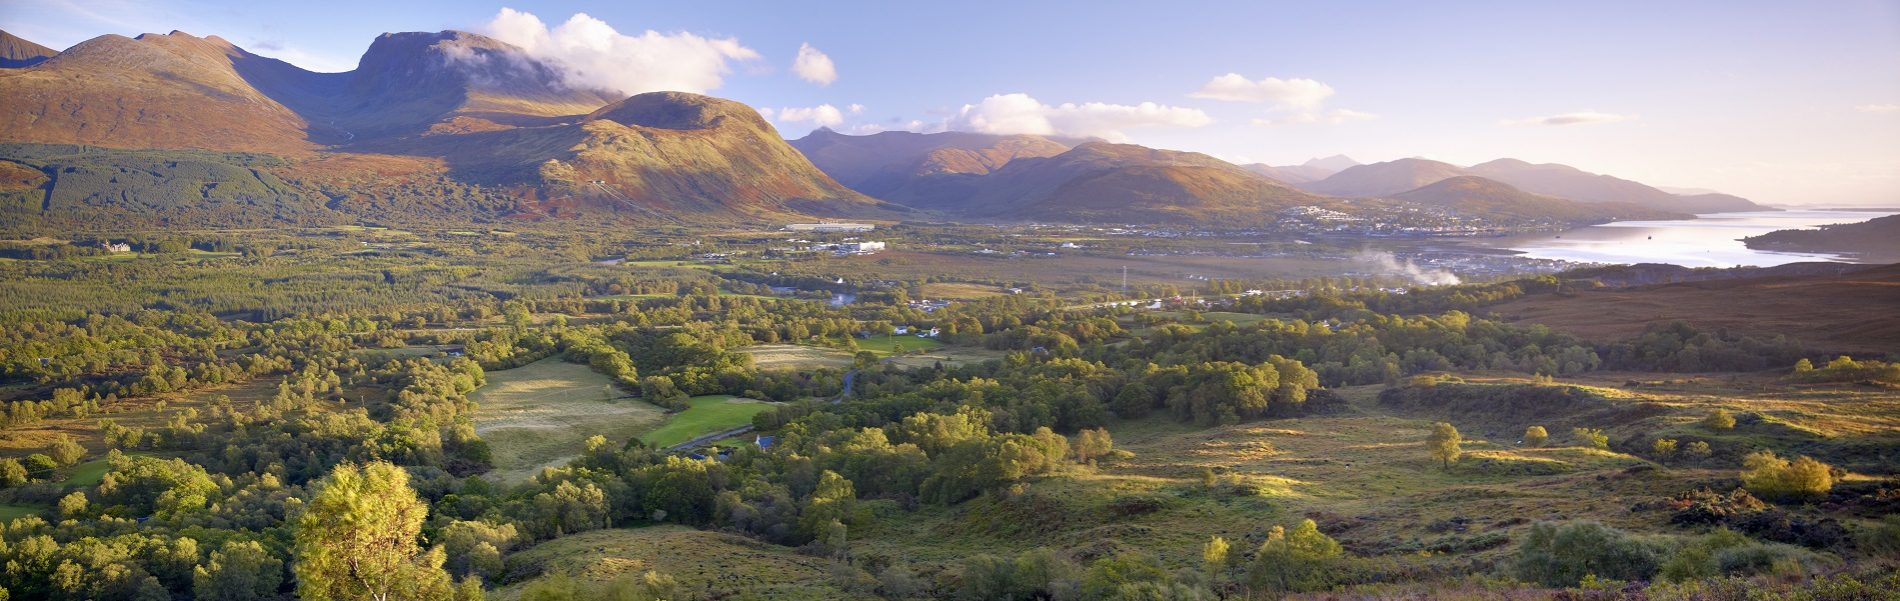 Tours of Scotland - Ben Nevis